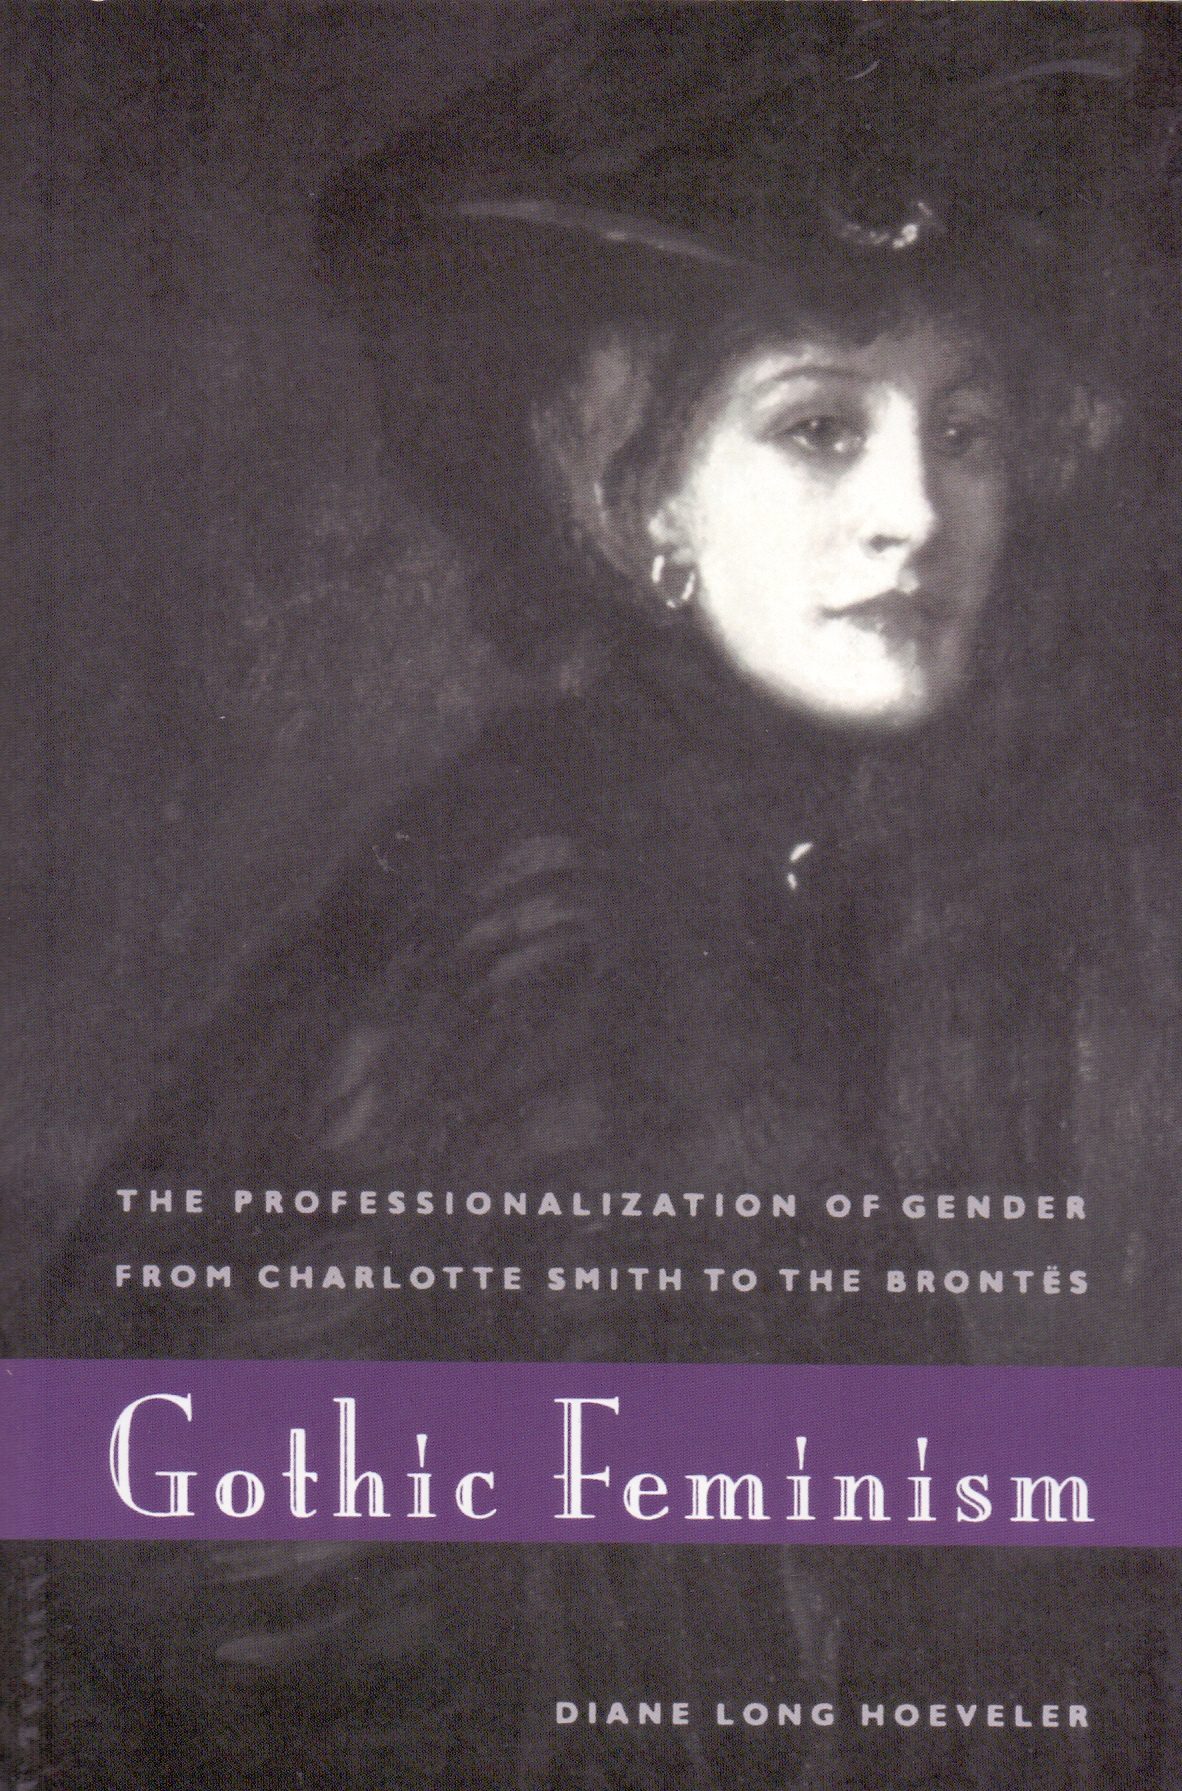 Gothic Feminism: The Professionalization of Gender from Charlotte Smith to the Brontes - Diane Long Hoeveler [Taschenbuc